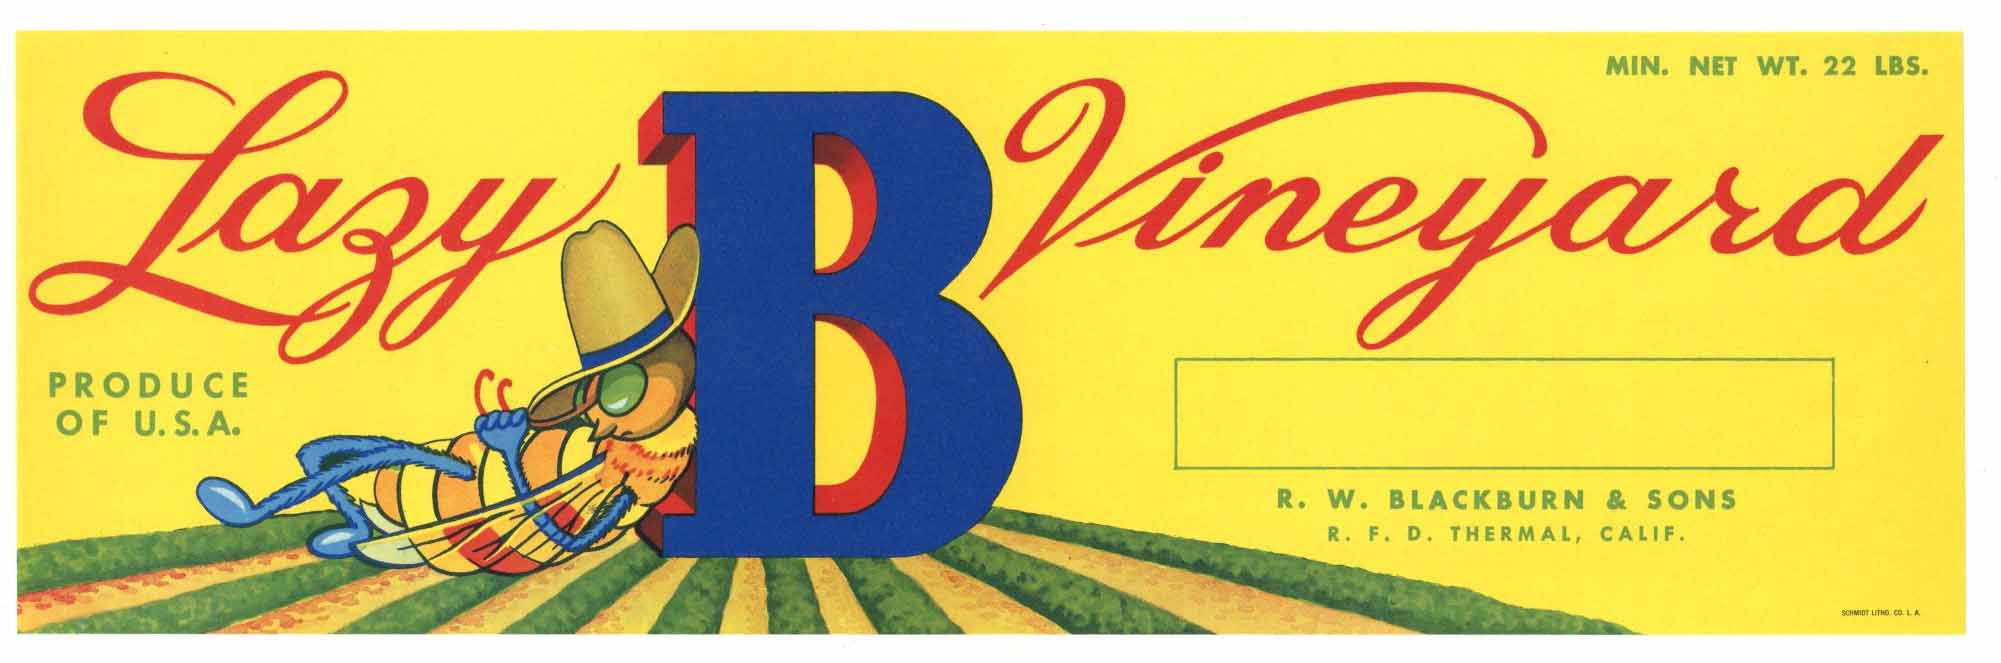 Lazy B Vineyard Brand Vintage Grape Crate Label y